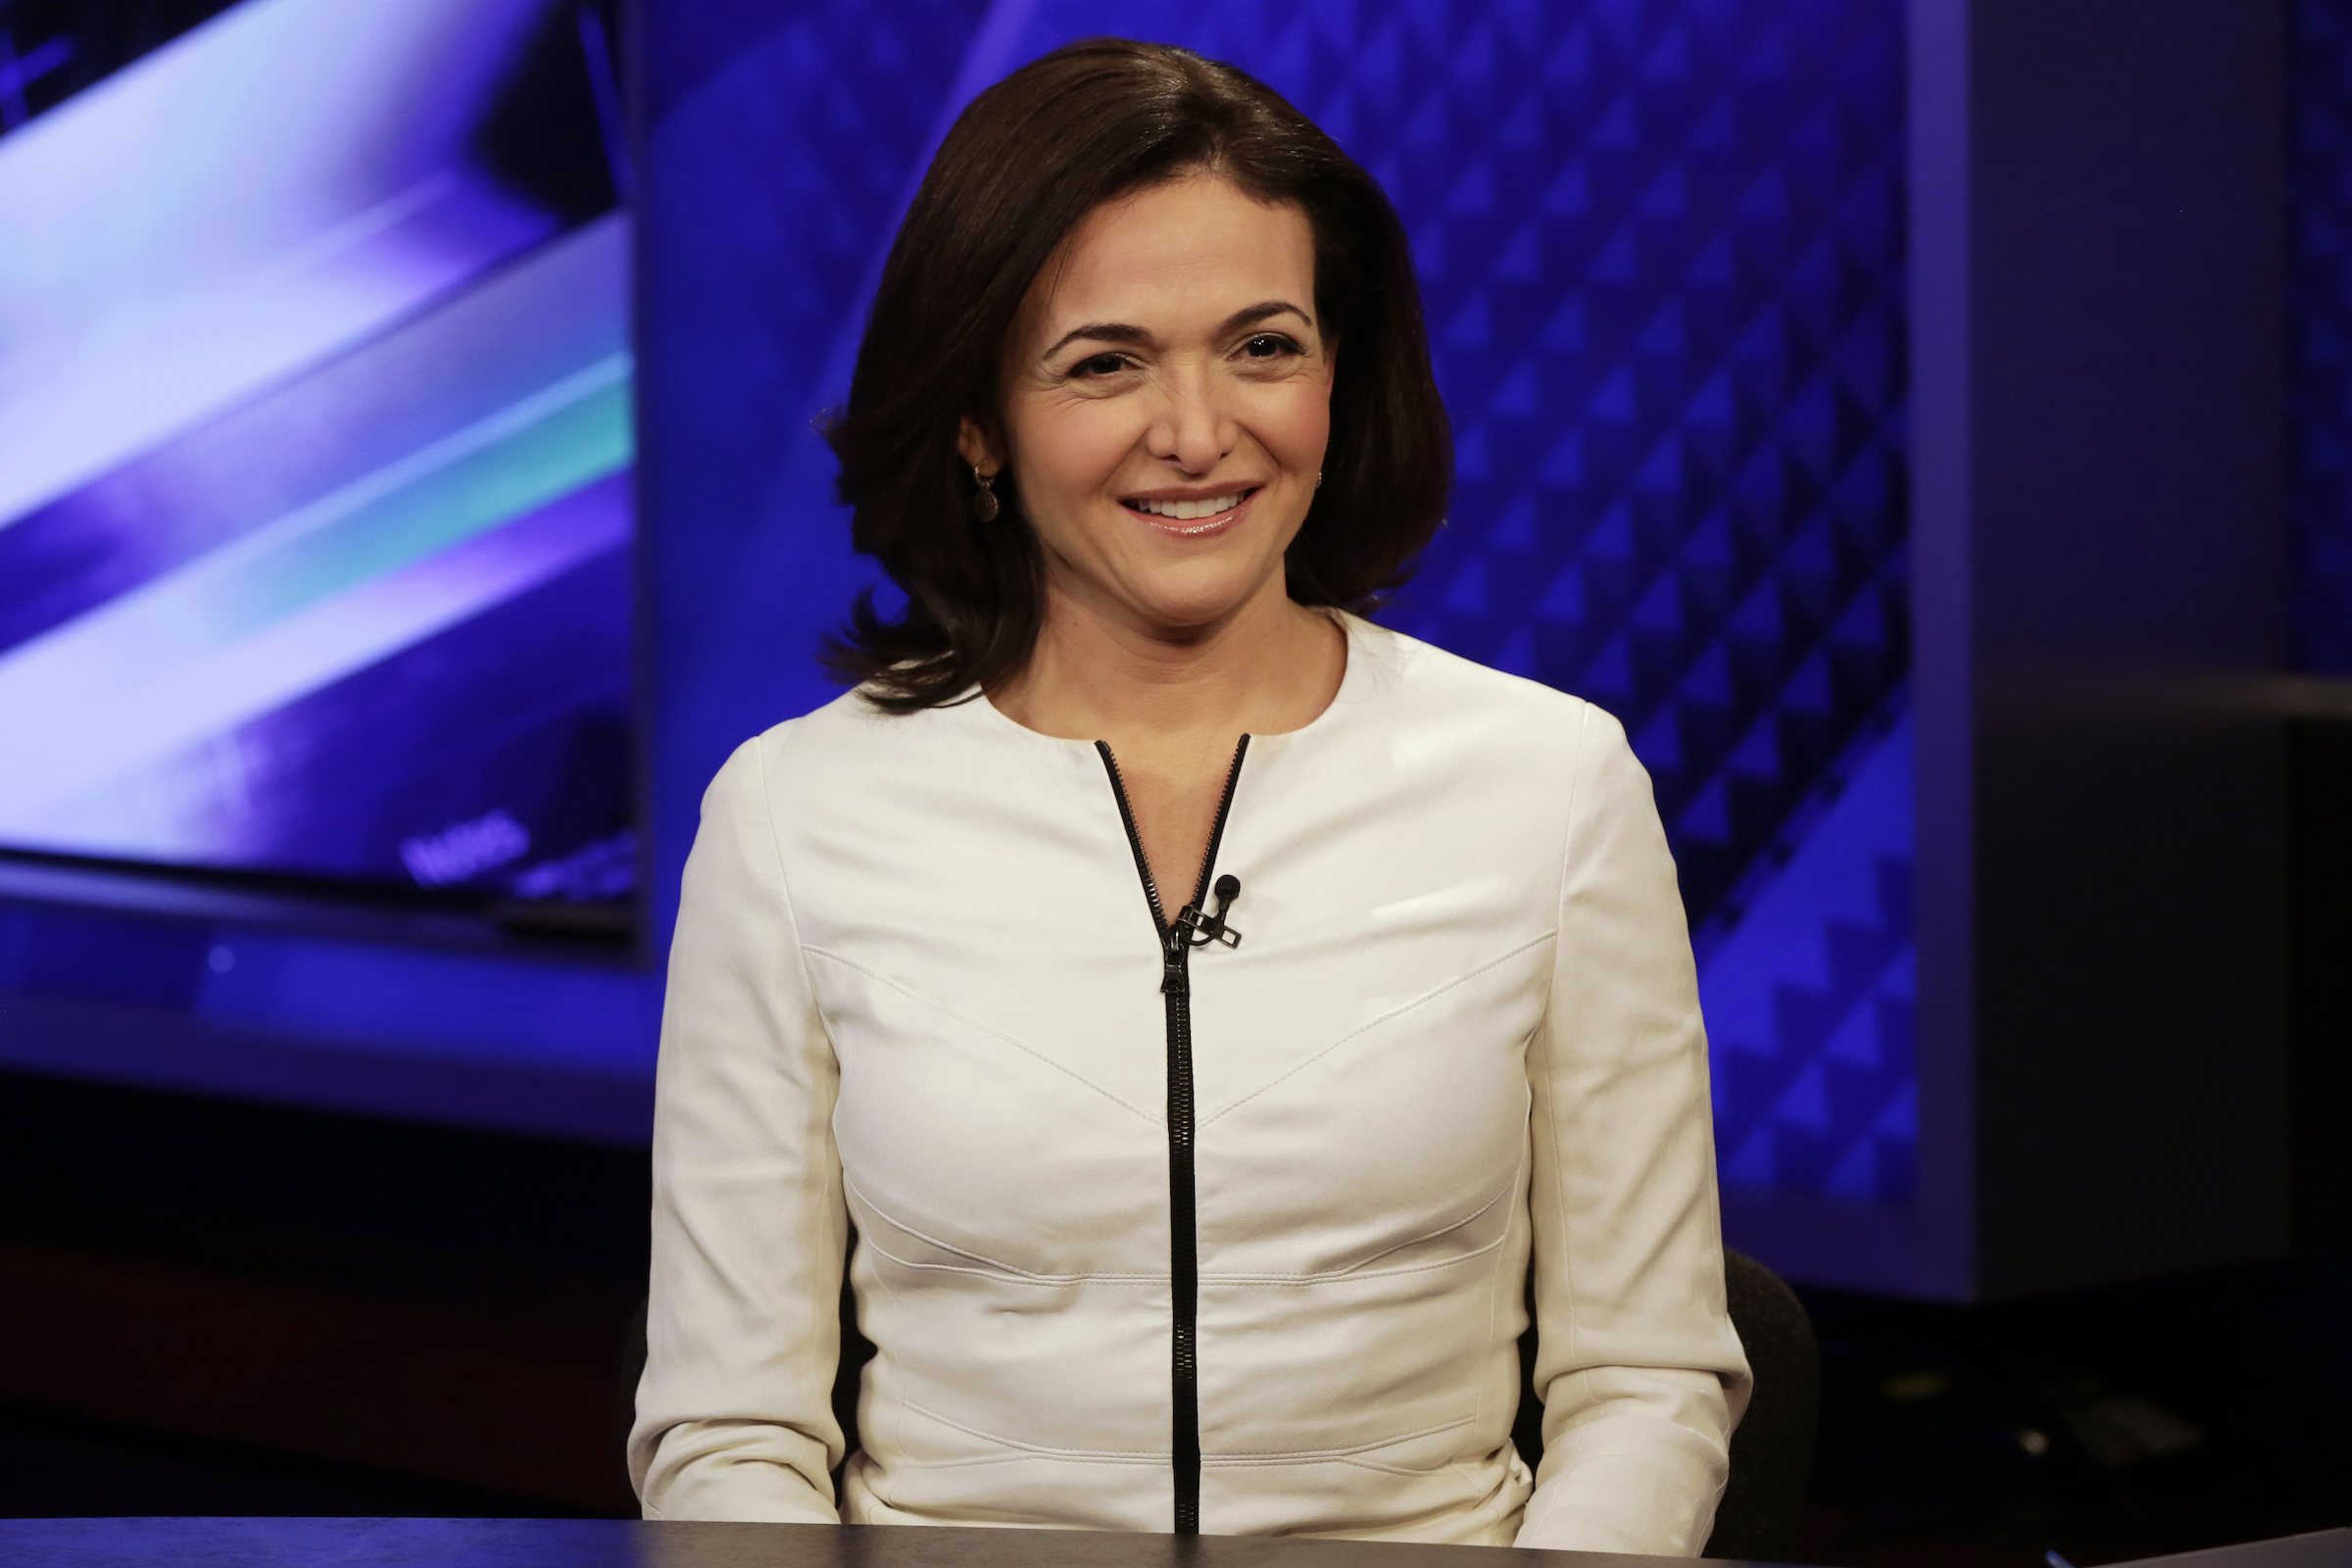 """Facebook COO Sheryl Sandberg is interviewed by Megyn Kelly, during a segment of her Fox News Channel """"The Kelly File,"""" program, in New York, Thursday, March 5, 2015. Sandberg has enlisted NBA stars LeBron James, Stephen Curry and some of the basketball league's other top players to convince more men to join the fight for women's rights at home and at work."""